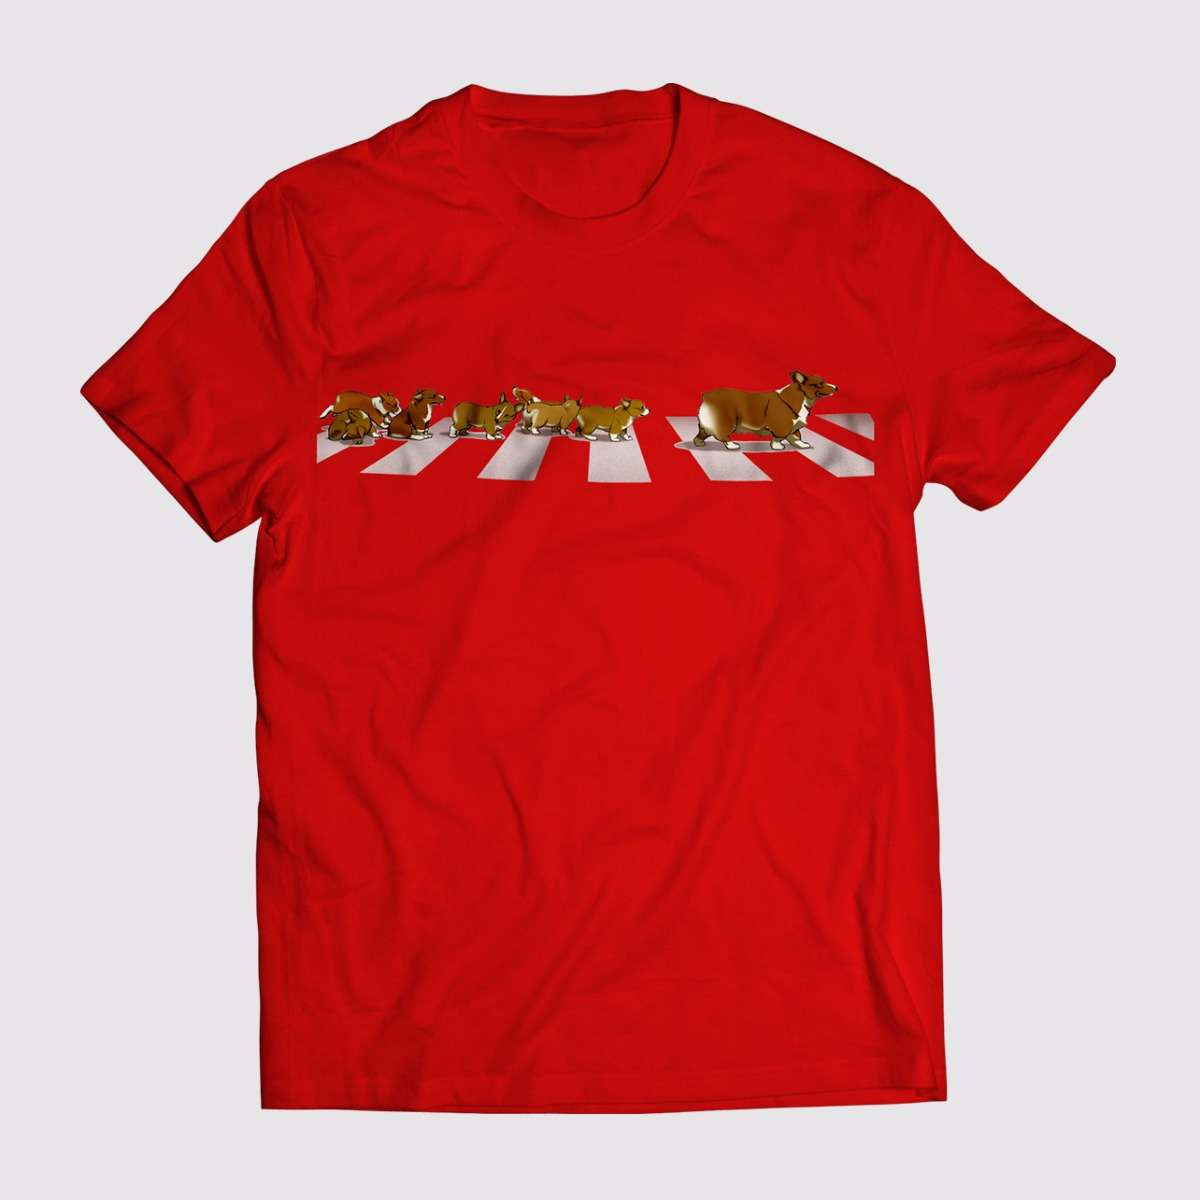 T-Shirt - Red Apparel